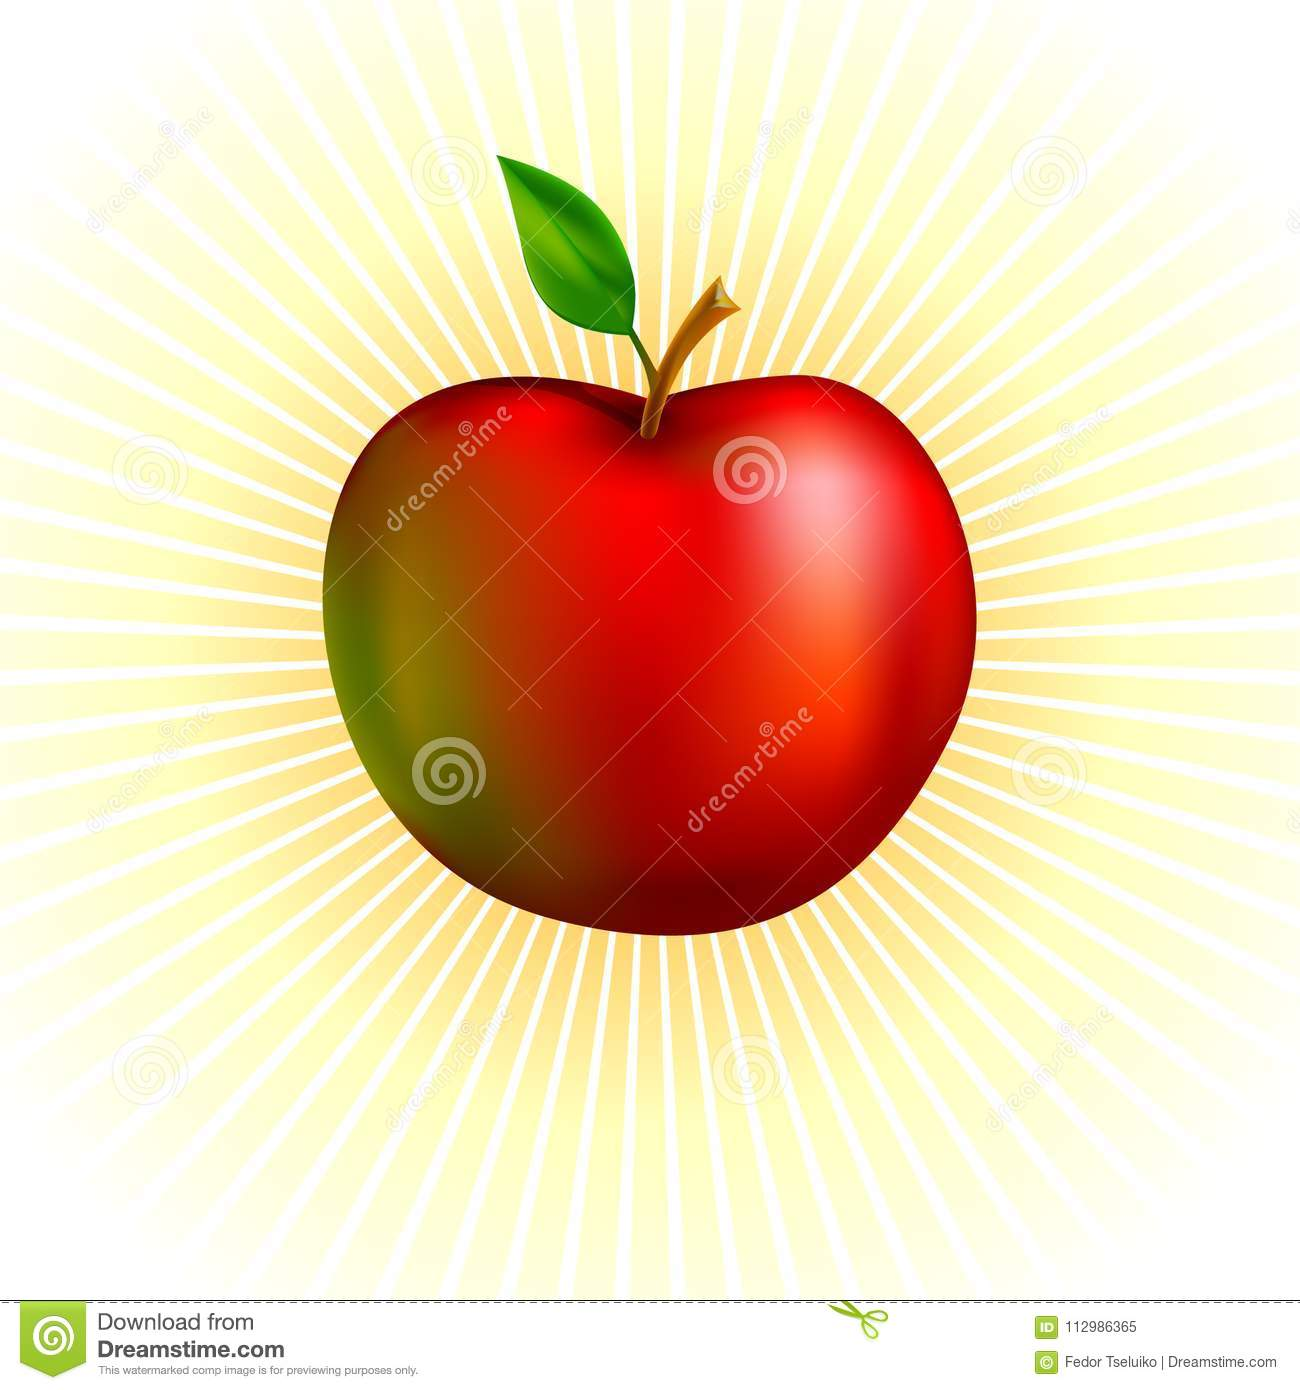 Red apple illustration.